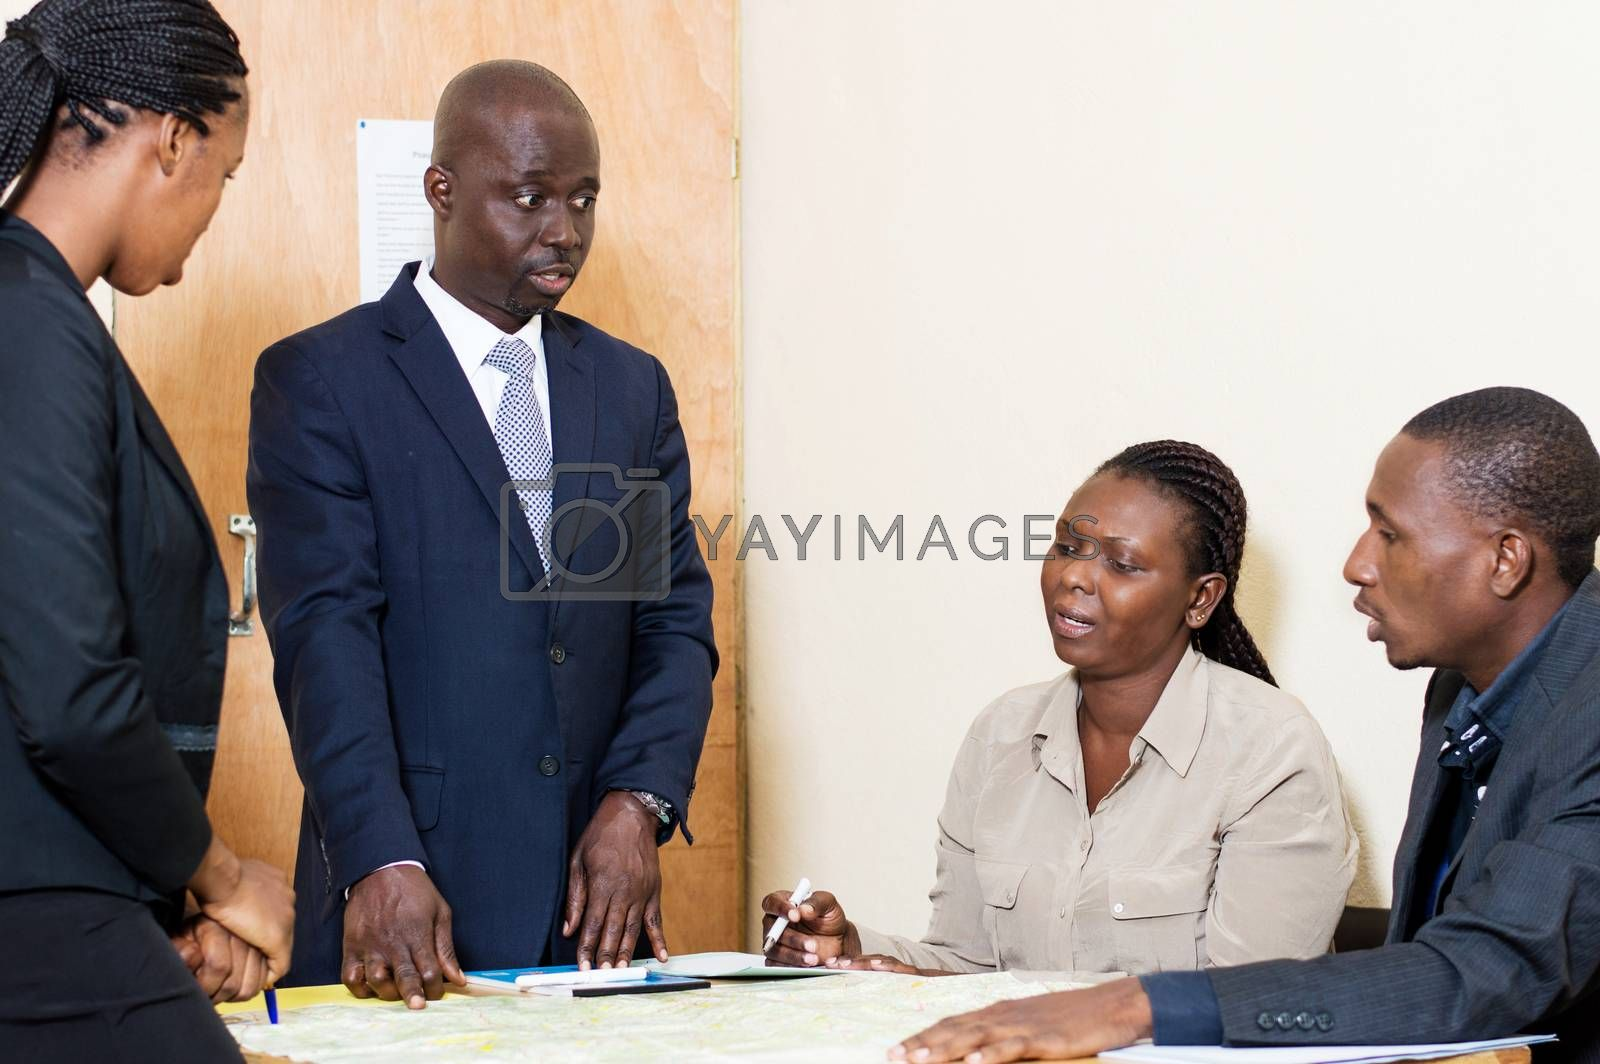 Business colleagues meet in a meeting at the office to discuss their work plans.